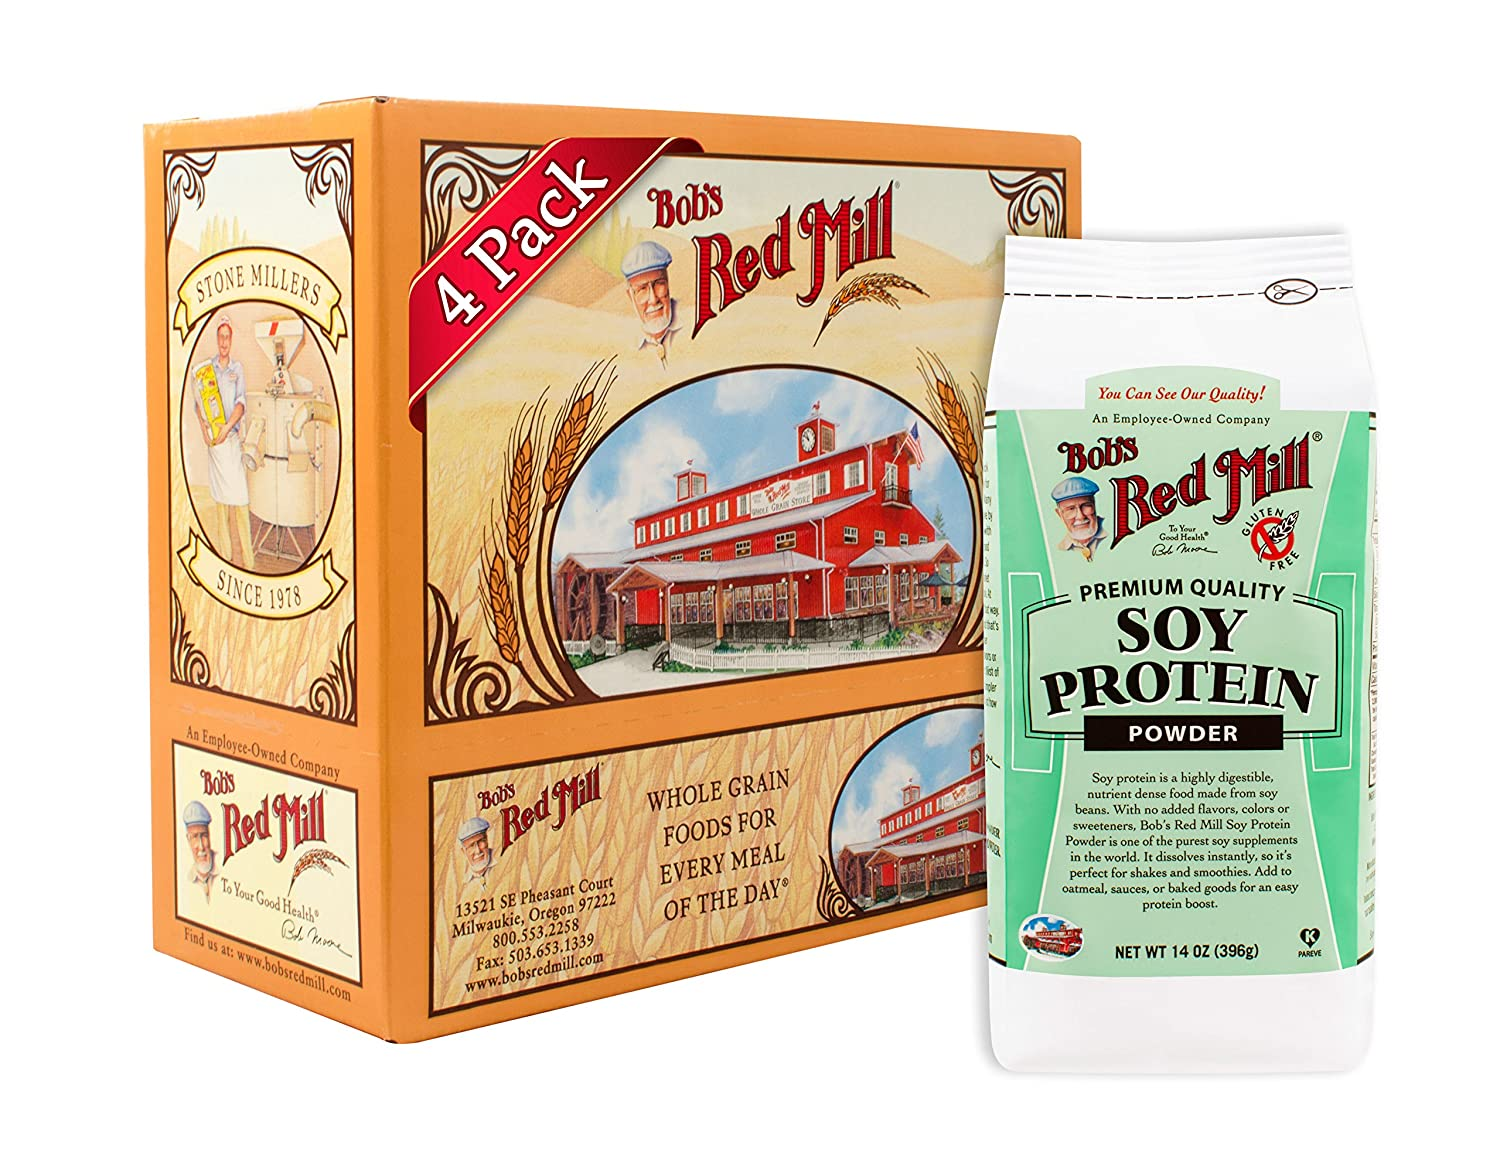 Bob s Red Mill Gluten Free Soy Protein Powder, 14 Ounce Pack of 4